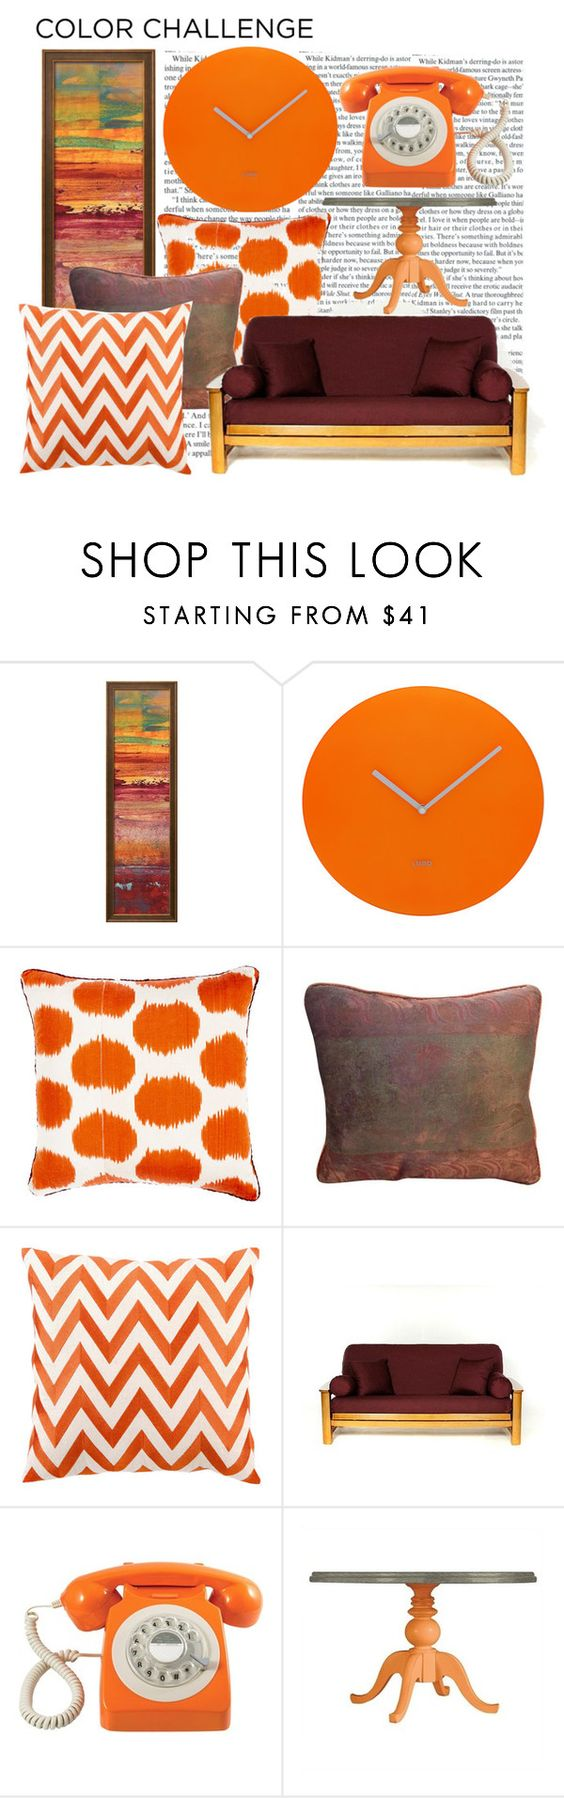 """""""Colour Challenge: Pumpkin and Burgandy"""" by chezqah-agnir on Polyvore featuring interior, interiors, interior design, home, home decor, interior decorating, Madeline Weinrib, Fortuny, D.L. Rhein and GPO"""